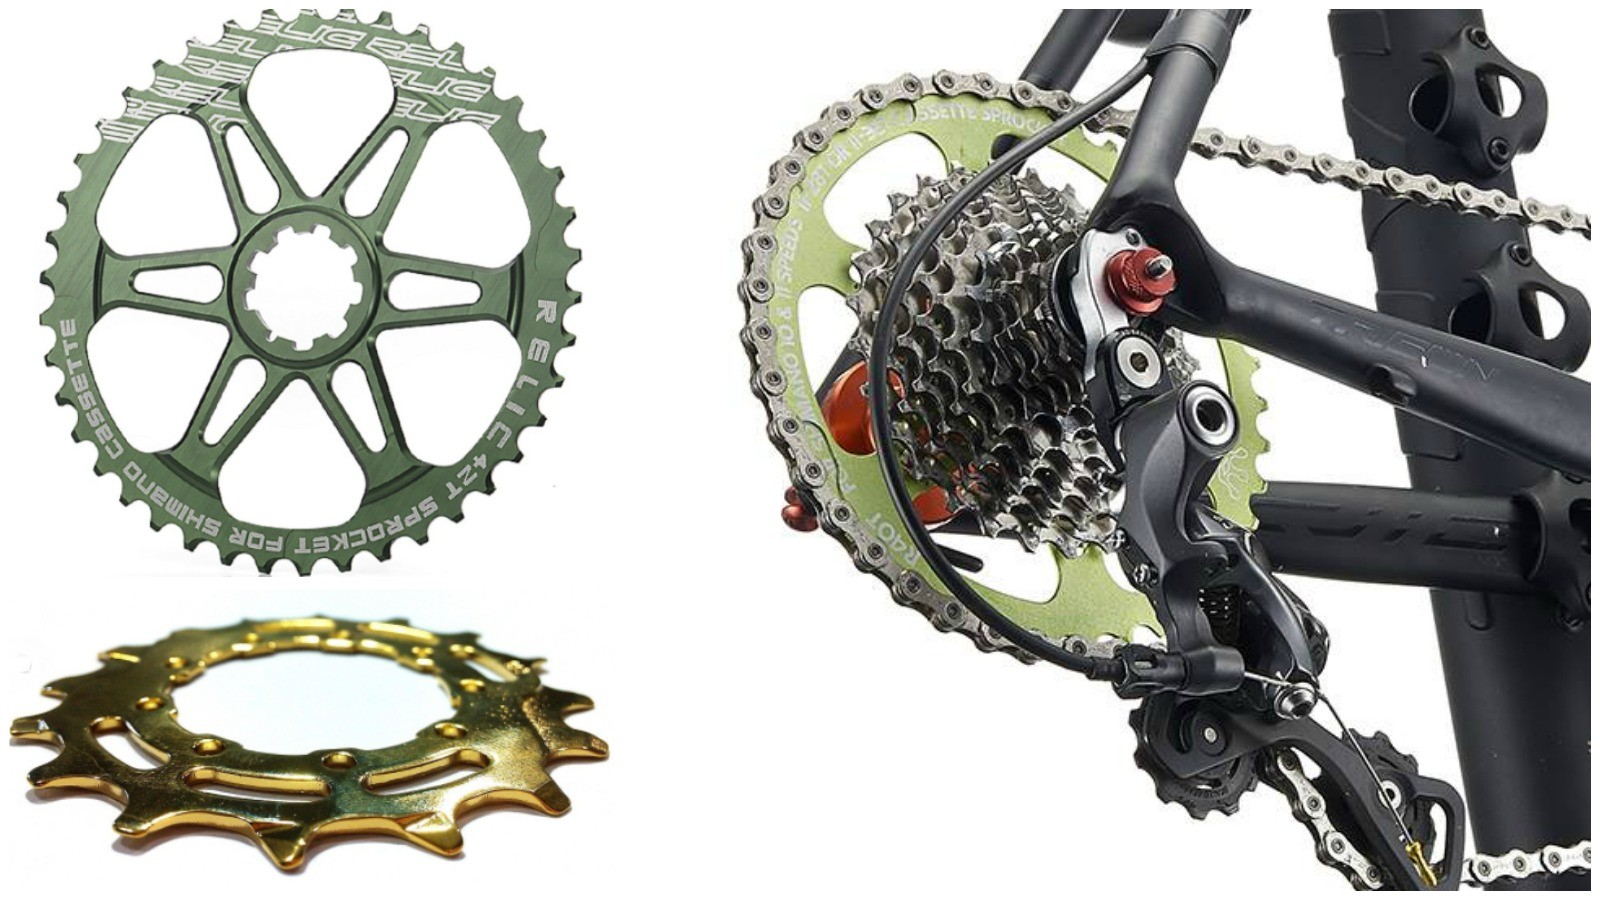 Relic MTB has launched a cassette expander for the road at this year's Taipei Bike Show